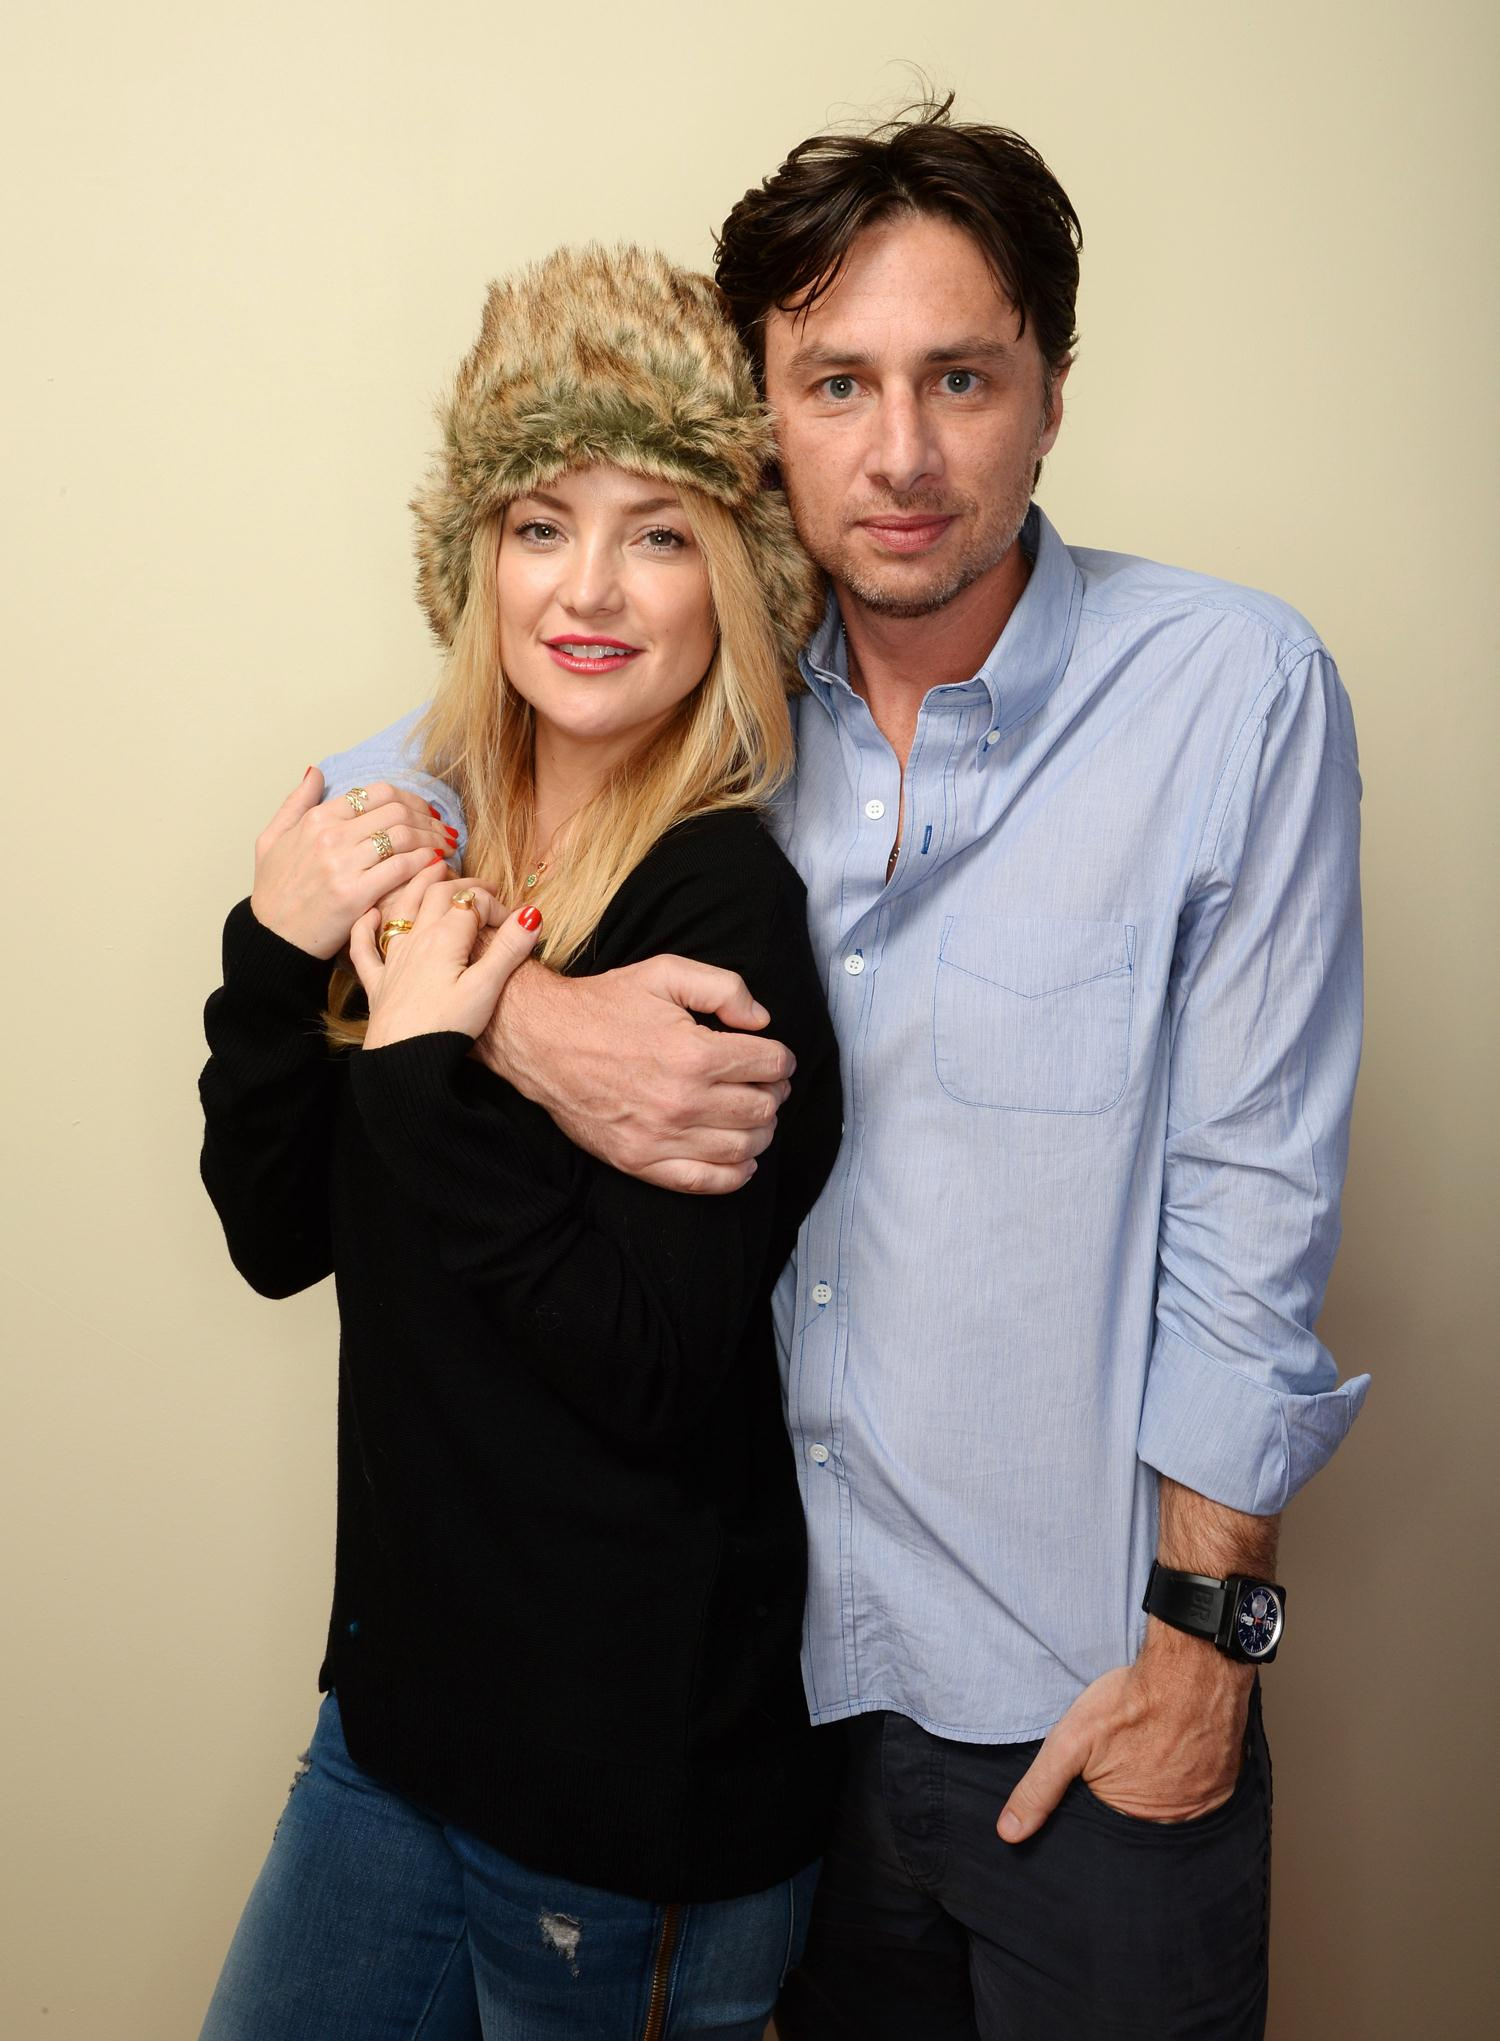 zach braff and kate hudson dating now